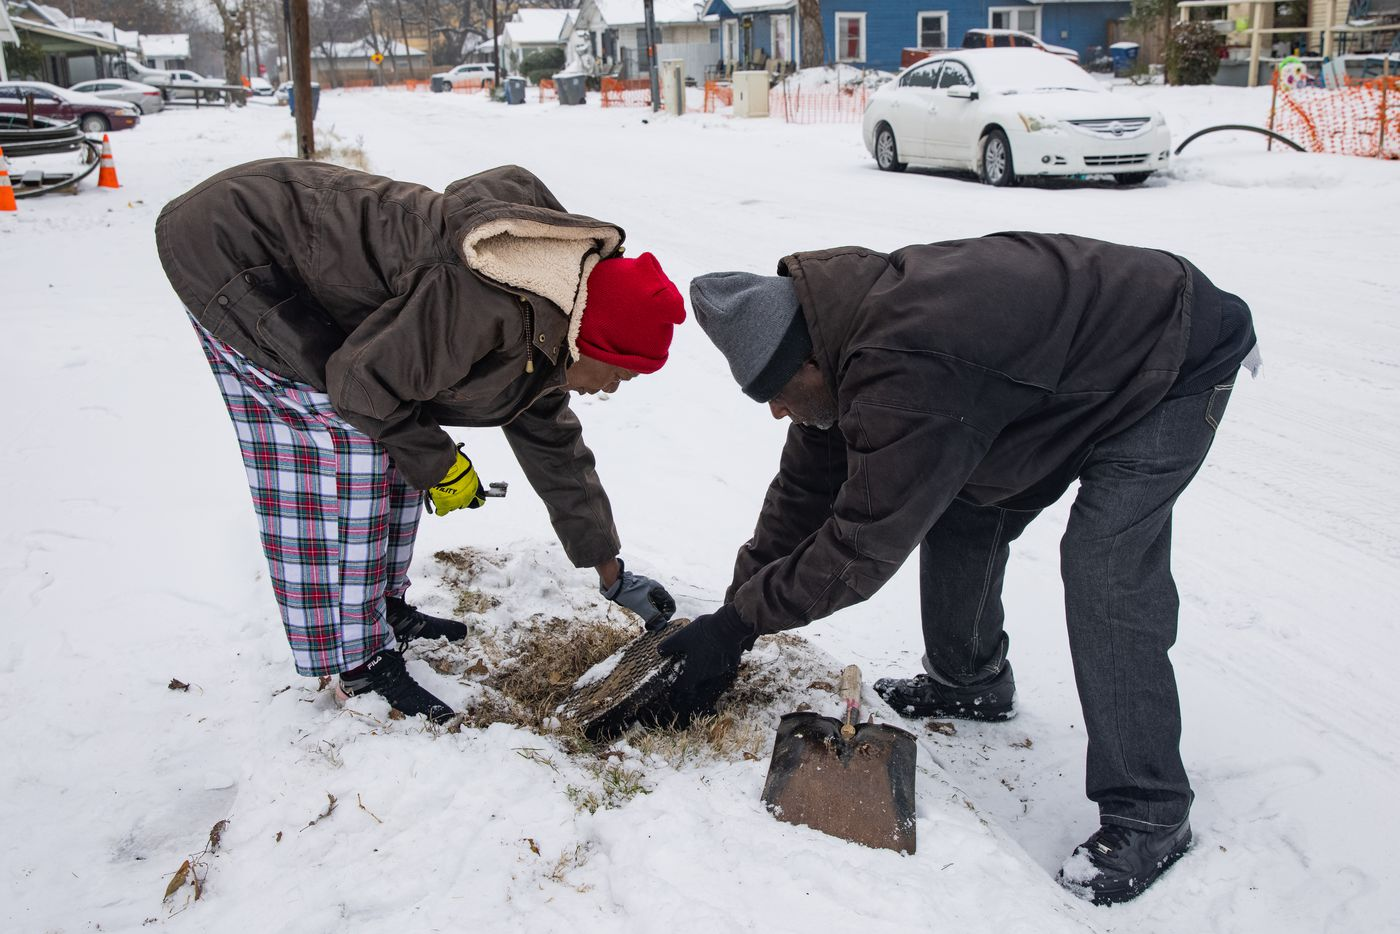 Patricia Broadway (left) and Leon Morris put the cover back after shutting the water off in Broadway's home in east Dallas on Wednesday, Feb. 17, 2021. Broadway noticed a pipe busted under her kitchen even though she said she did everything right.